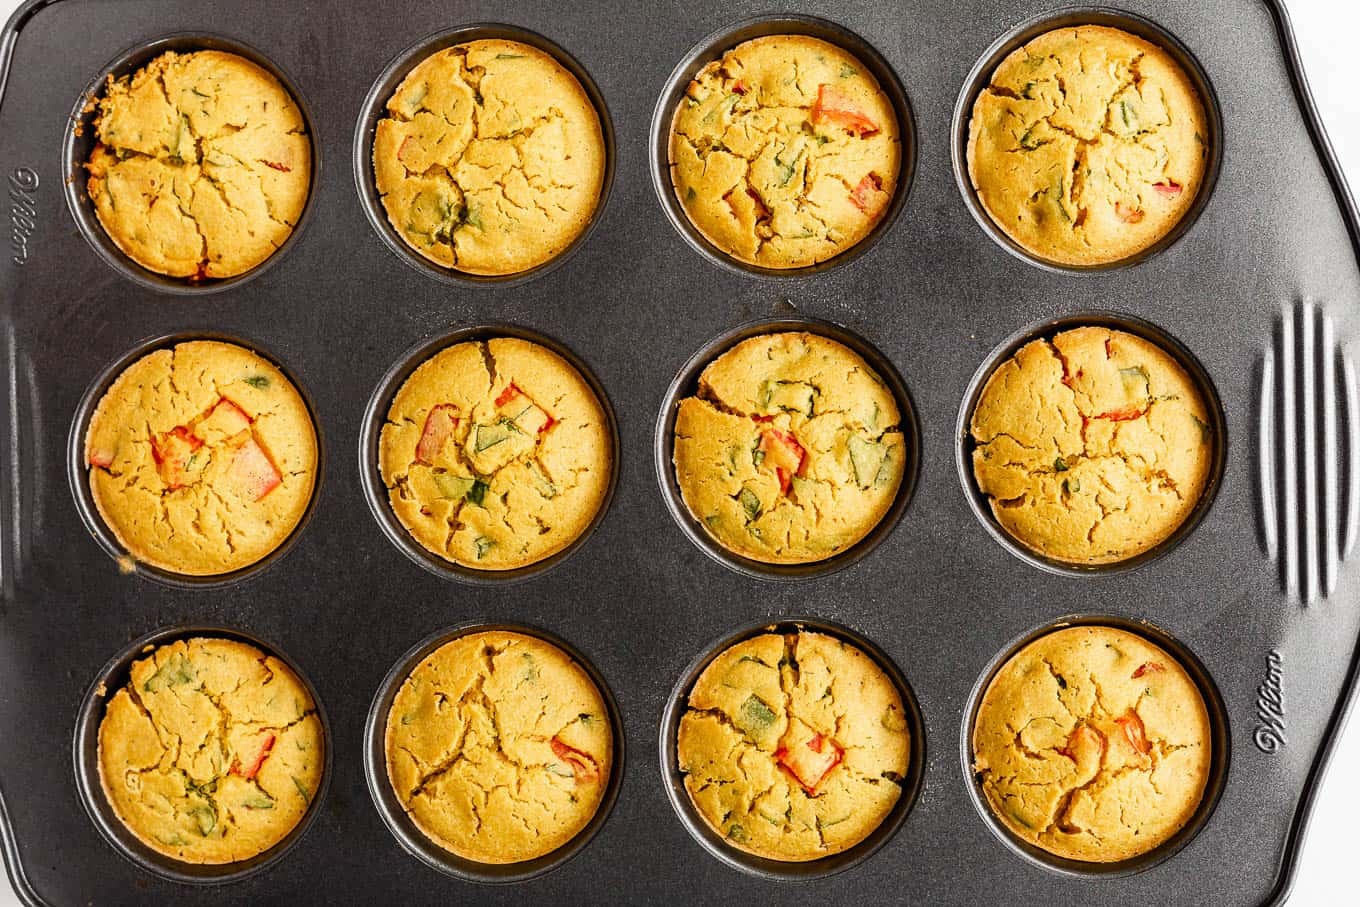 a baking pan with baked mini chickpea flour quiche